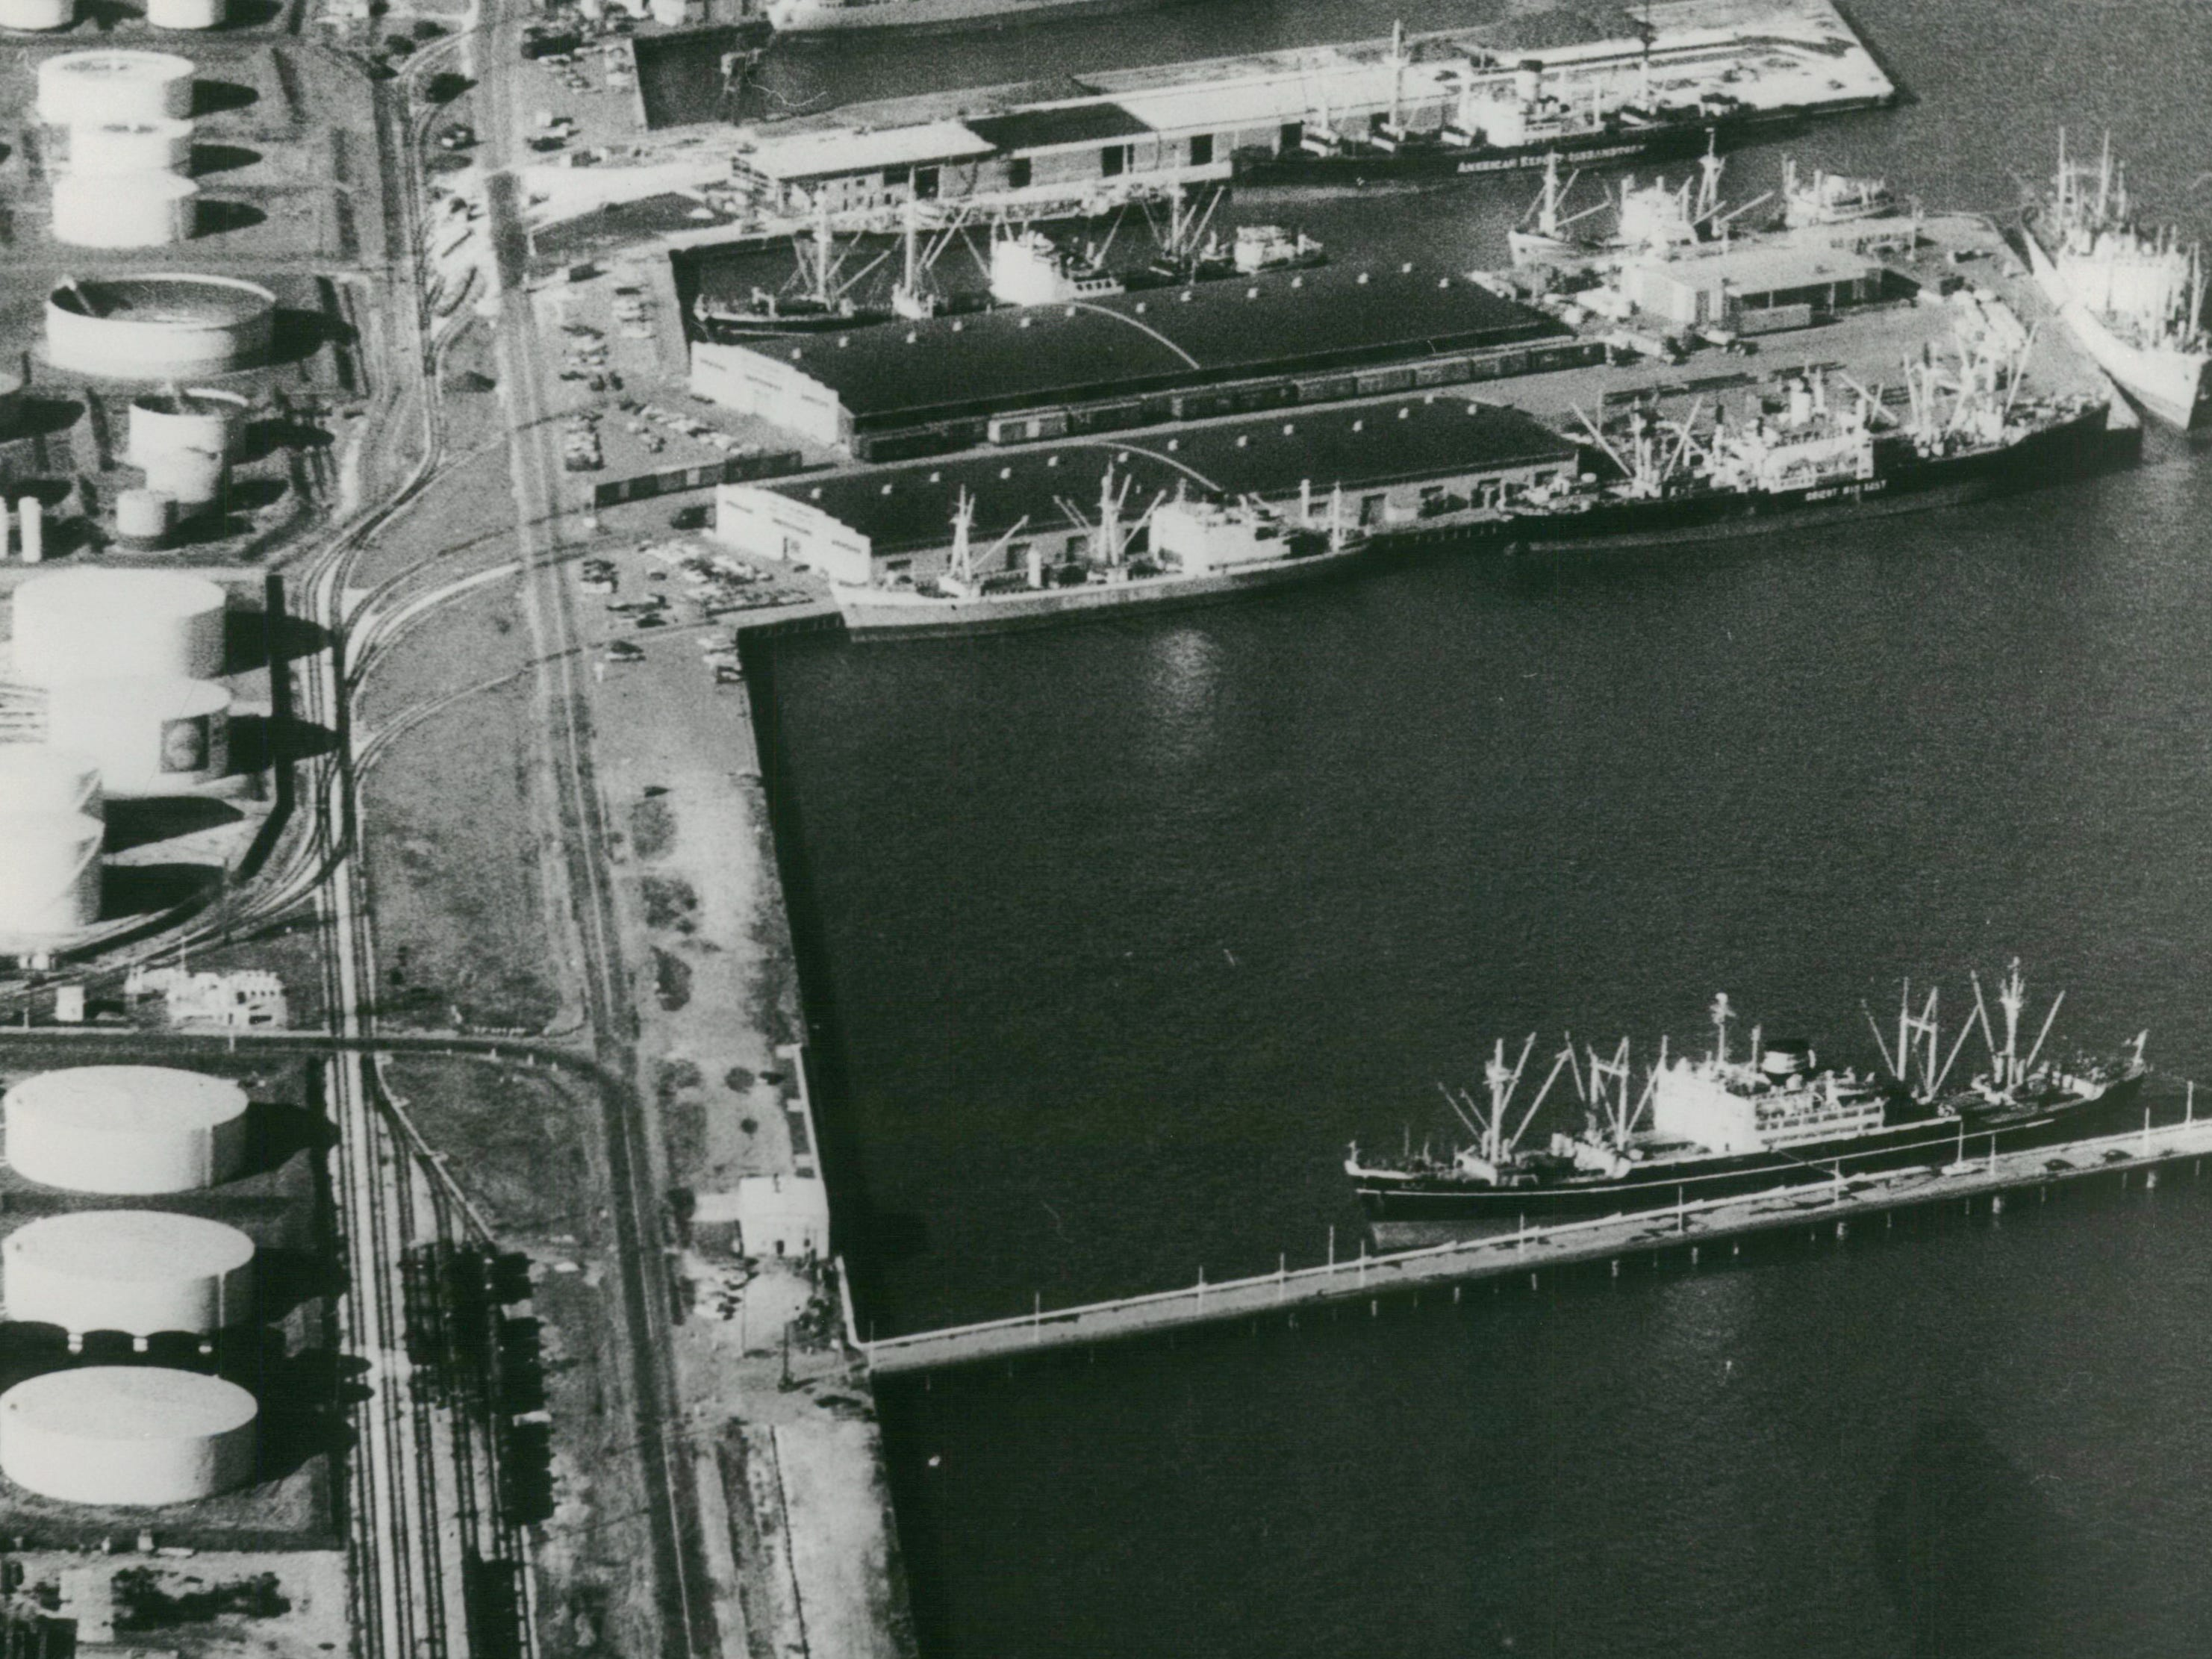 Milwaukee's harbor was a busy place as shipping activity increased to beat the Dec. 3, 1996, closing of the St. Lawrence Seaway.  Longshoremen were busy loading and unloading 11 ships, 10 of which can be seen in this aerial photo of the berthing at Jones Island, Milwaukee.